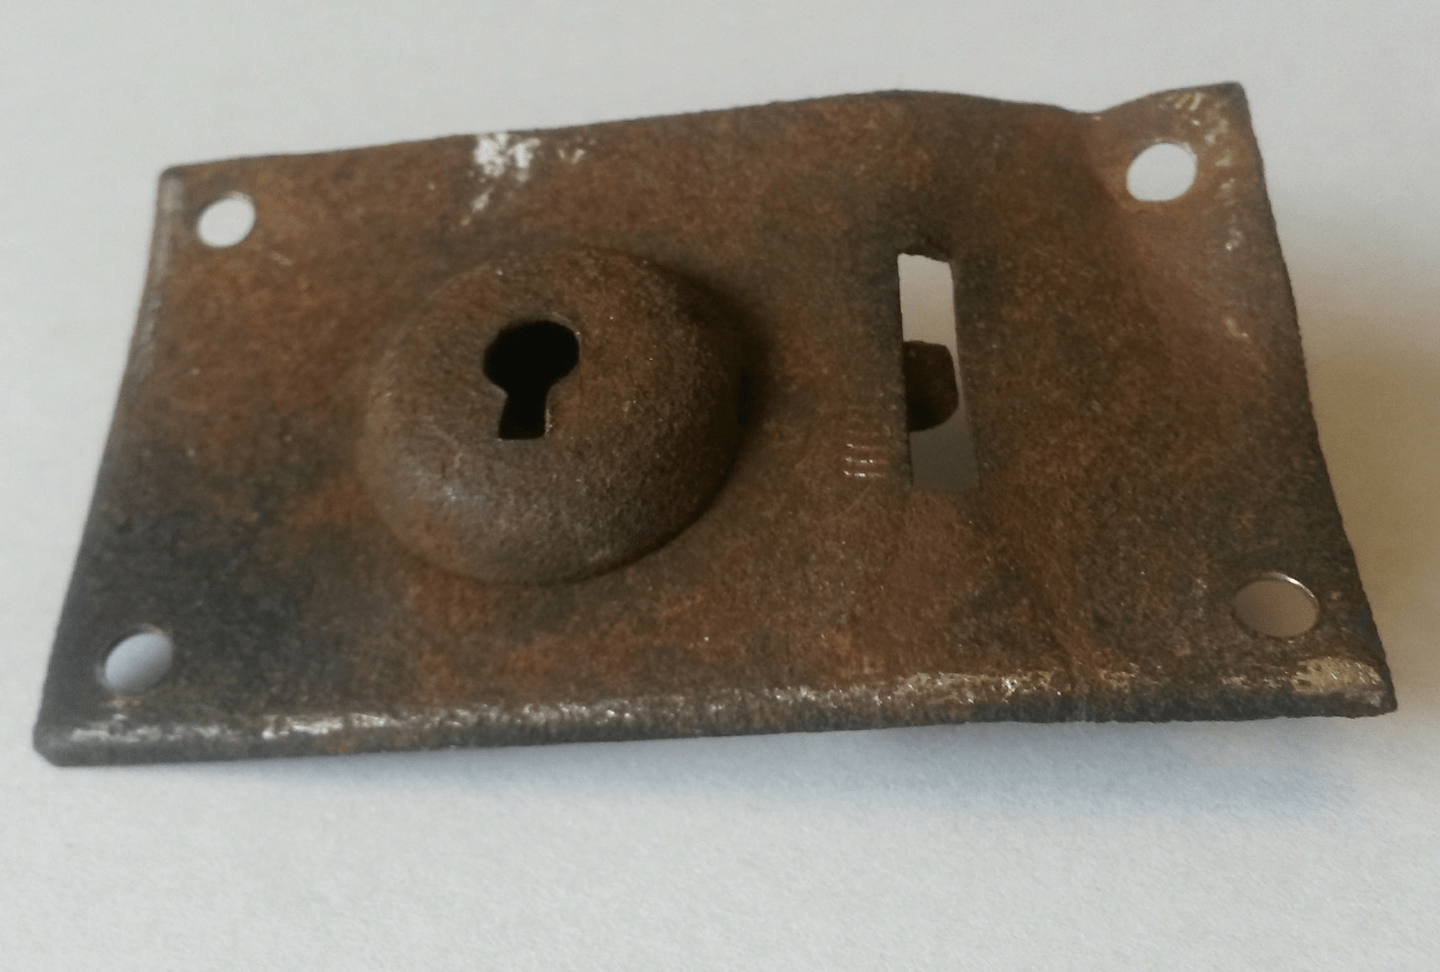 What to do with a rusty lock?